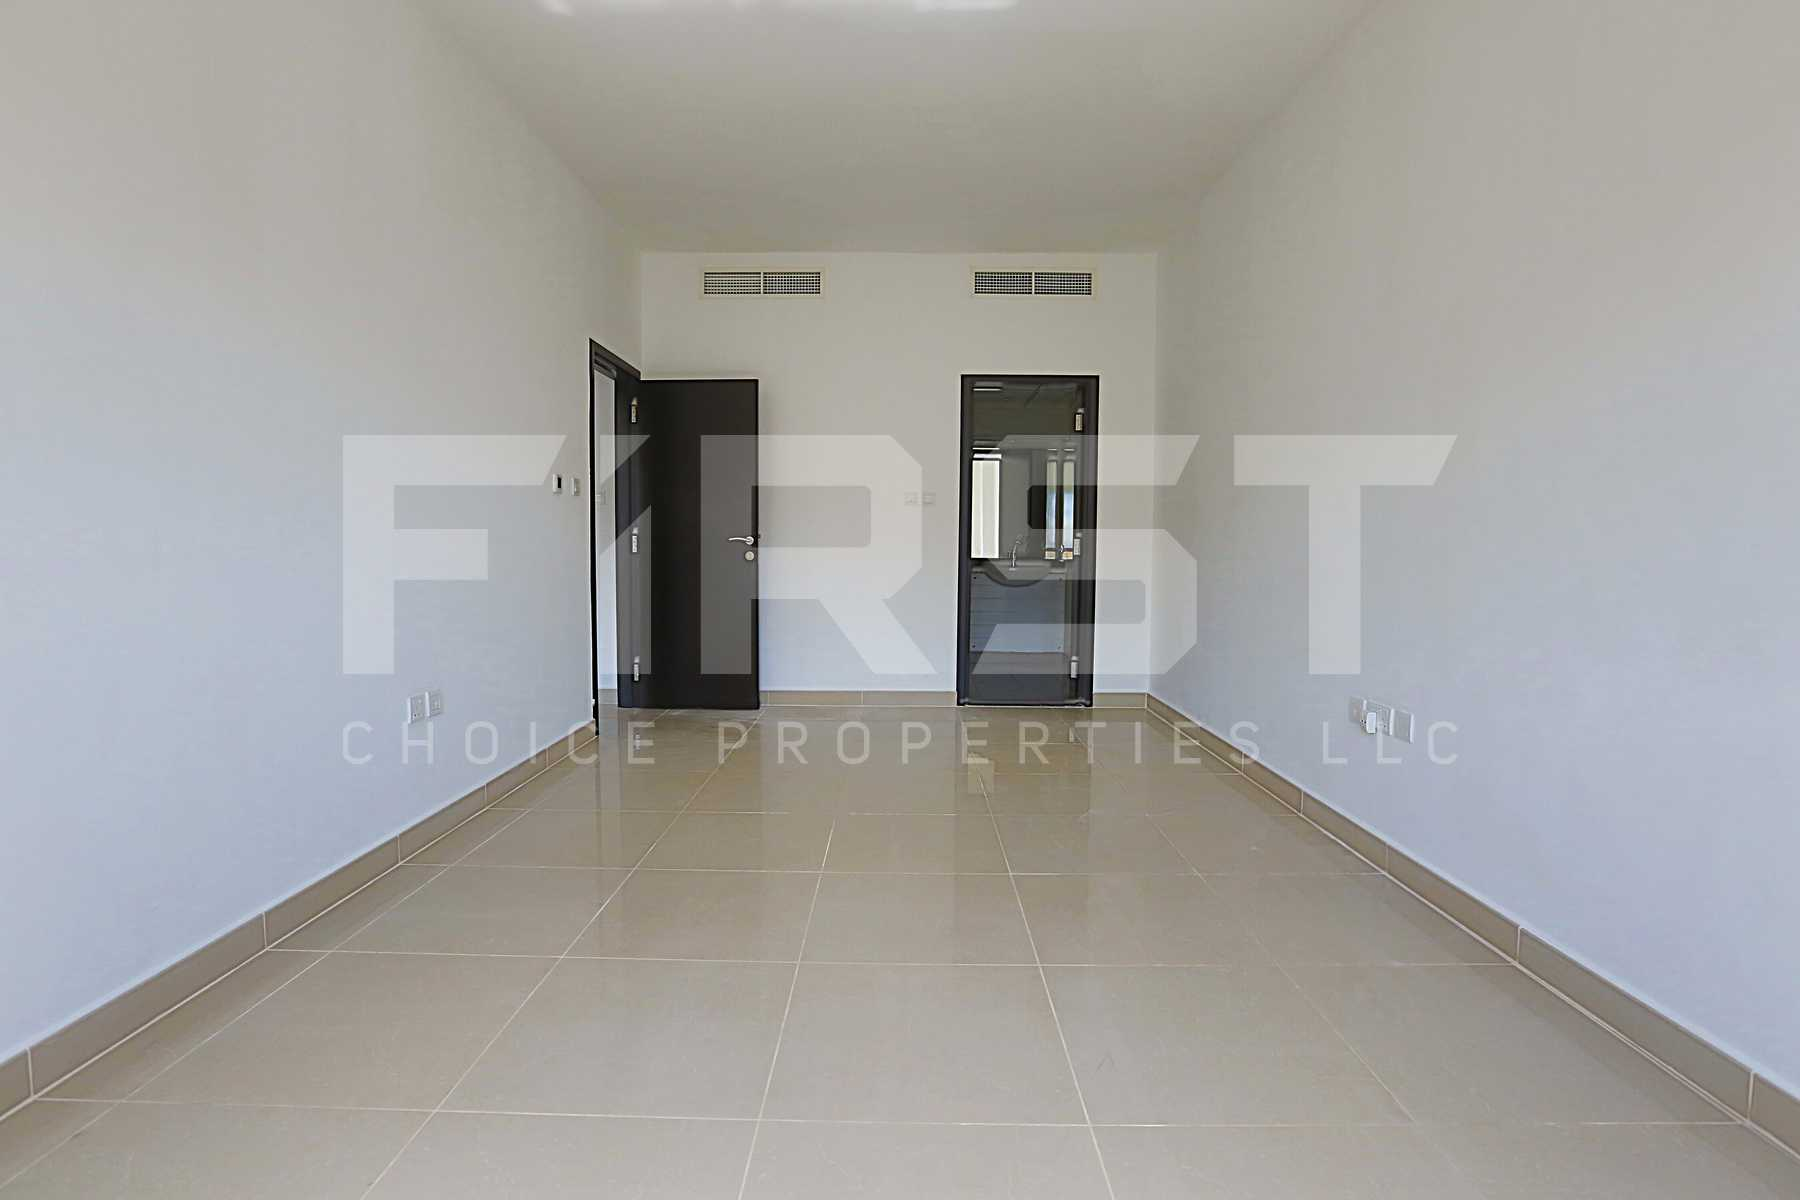 Internal Photo of 2 Bedroom Apartment Type B in Al Reef Downtown Al Reef Abu Dhabi UAE 114 sq.m 1227 (15).jpg